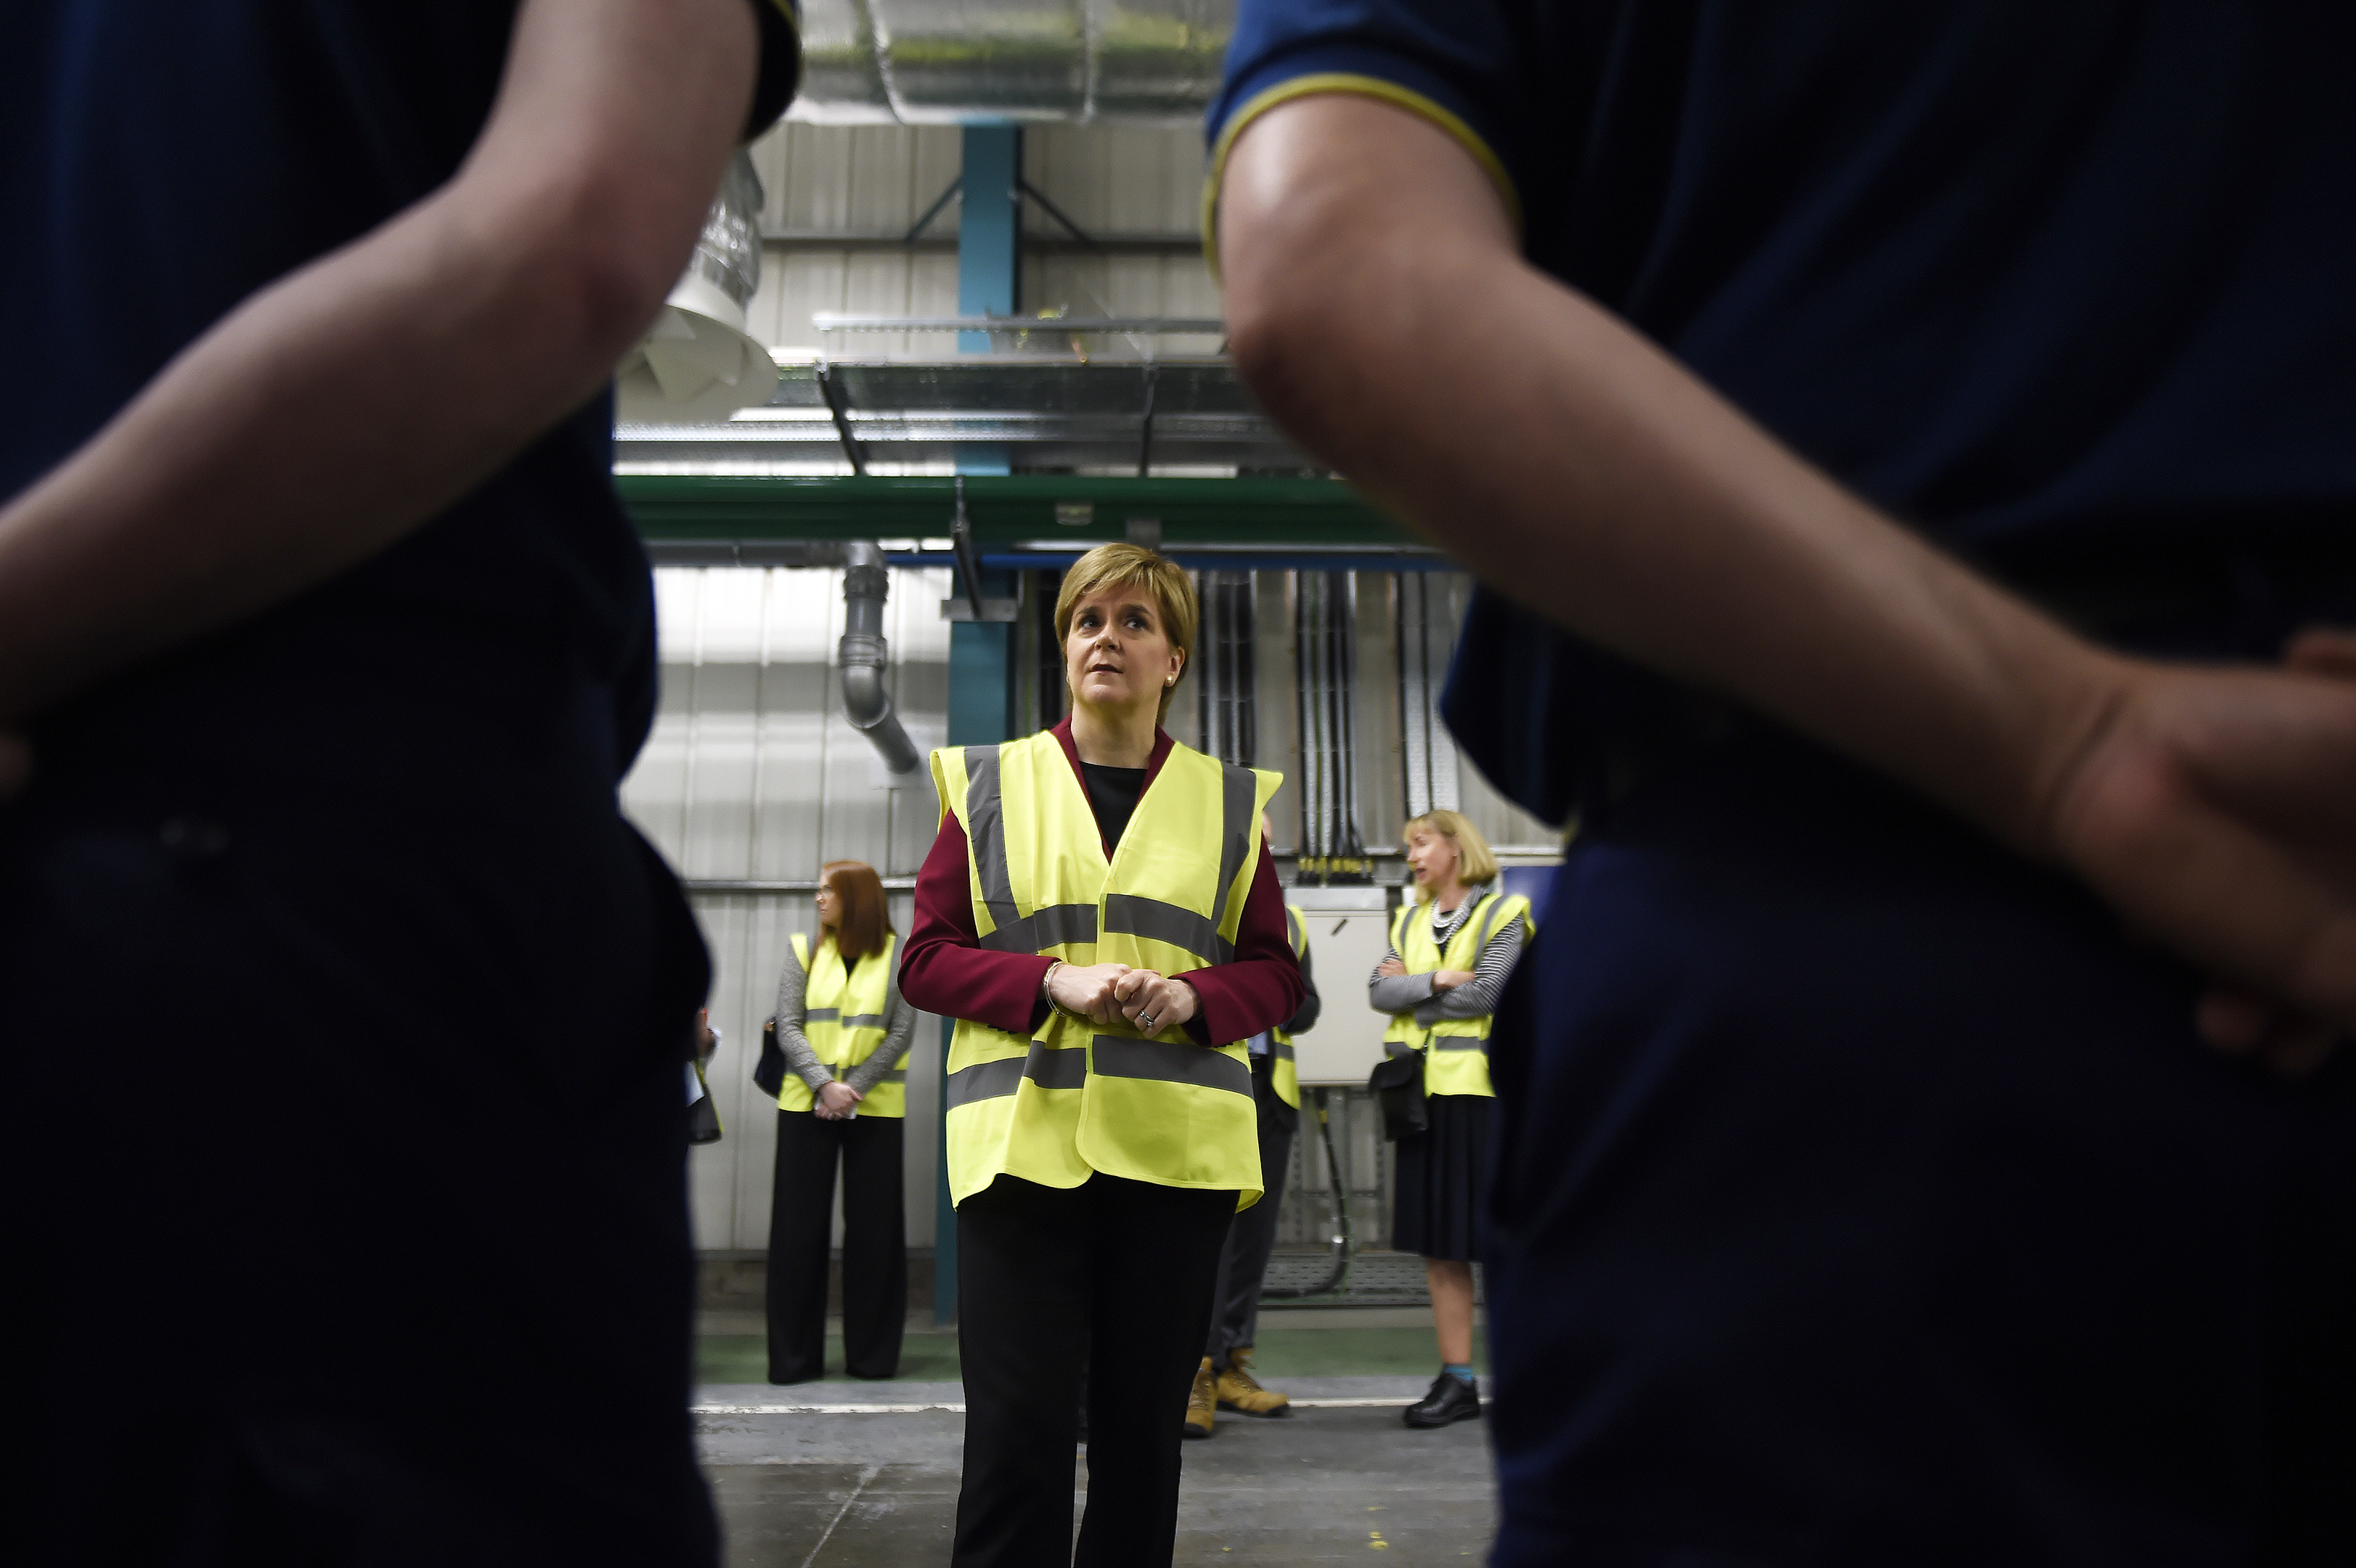 Nicola Sturgeon has said her government will help those affected by the job cuts to find alternative employment.